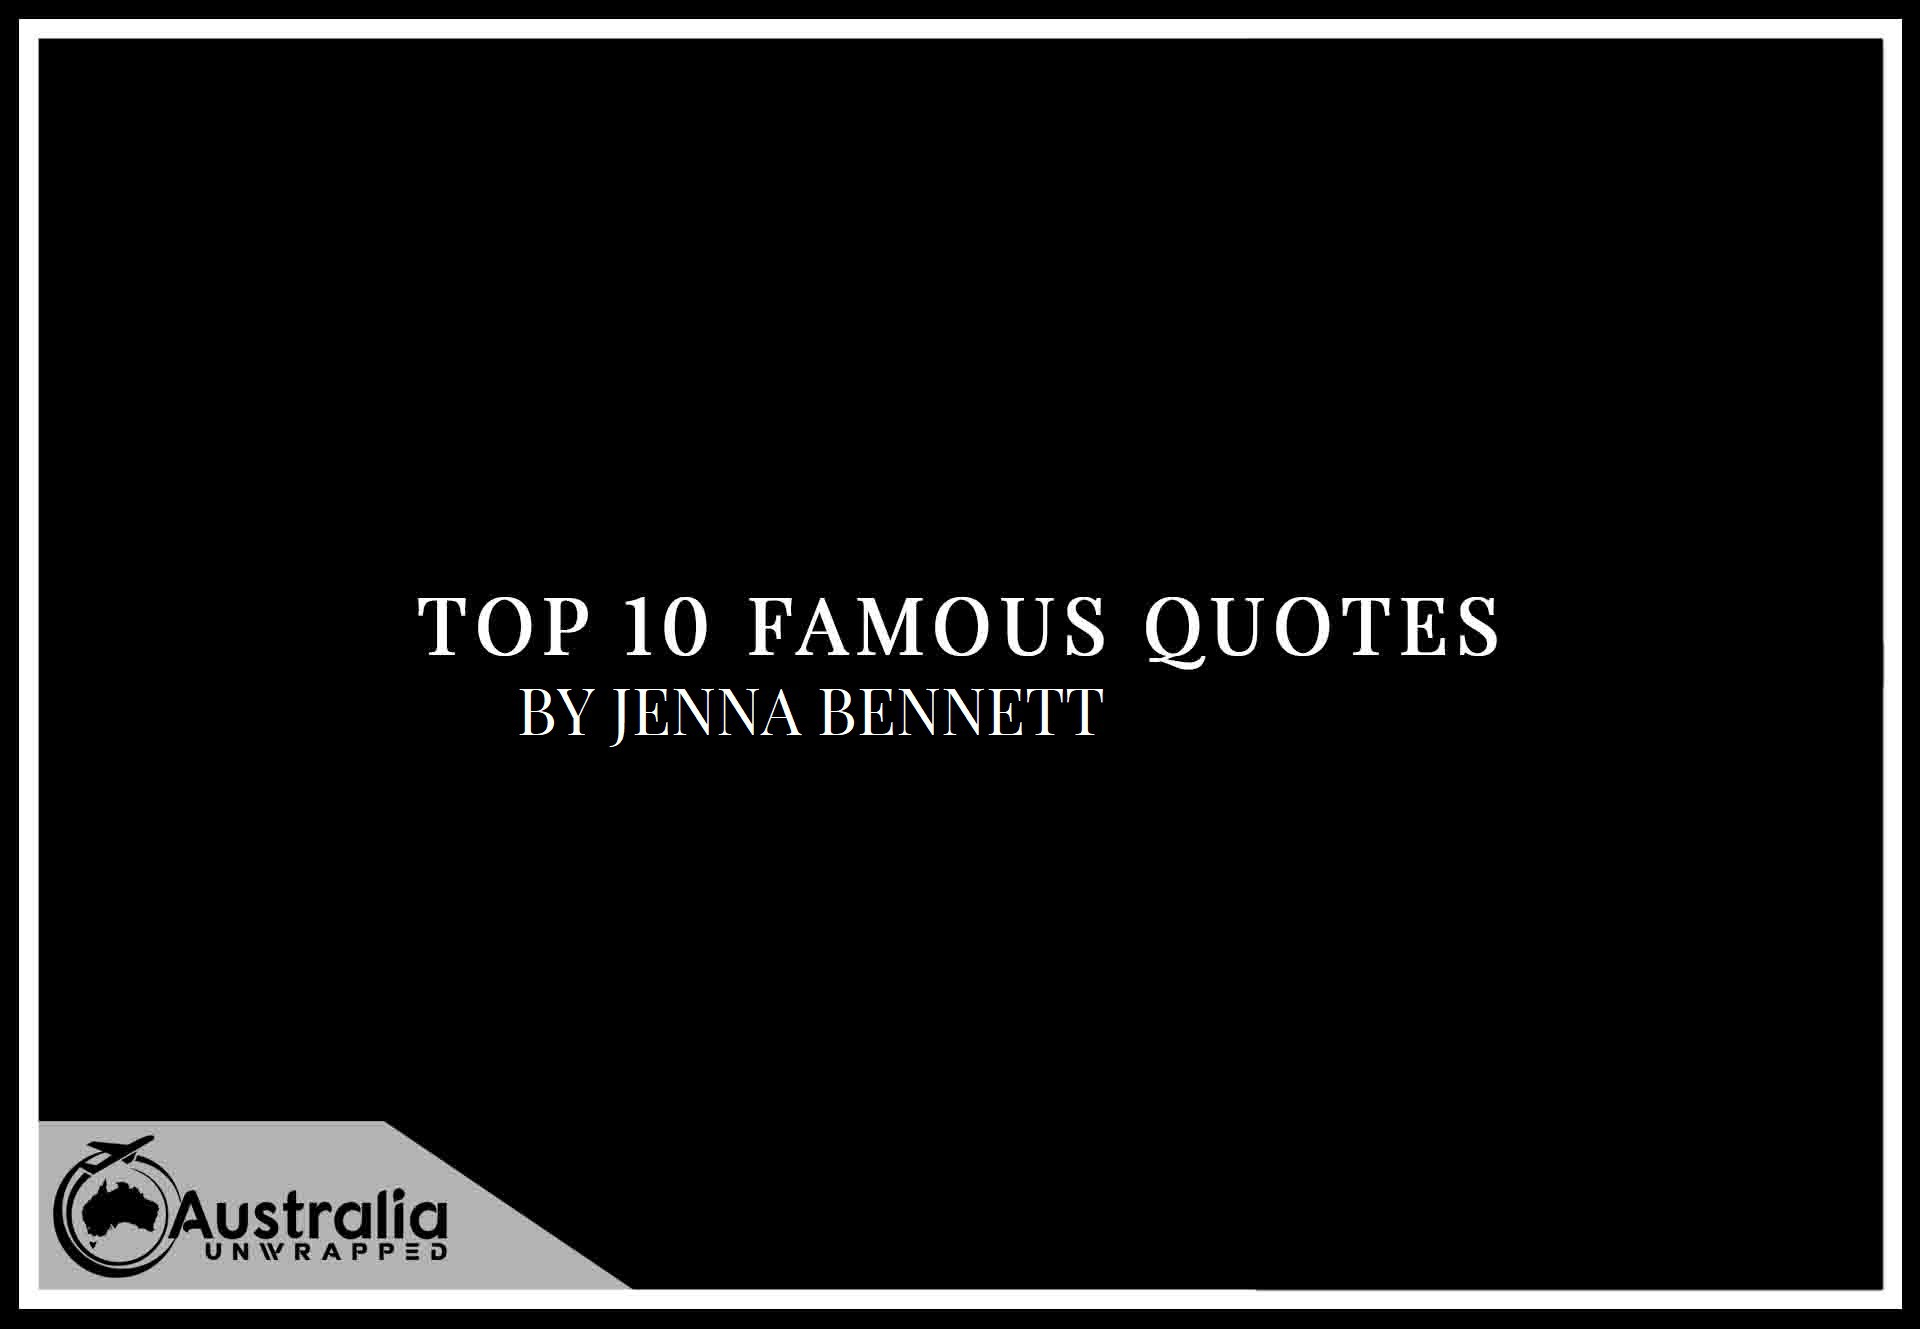 Top 10 Famous Quotes by Author Jenna Bennett